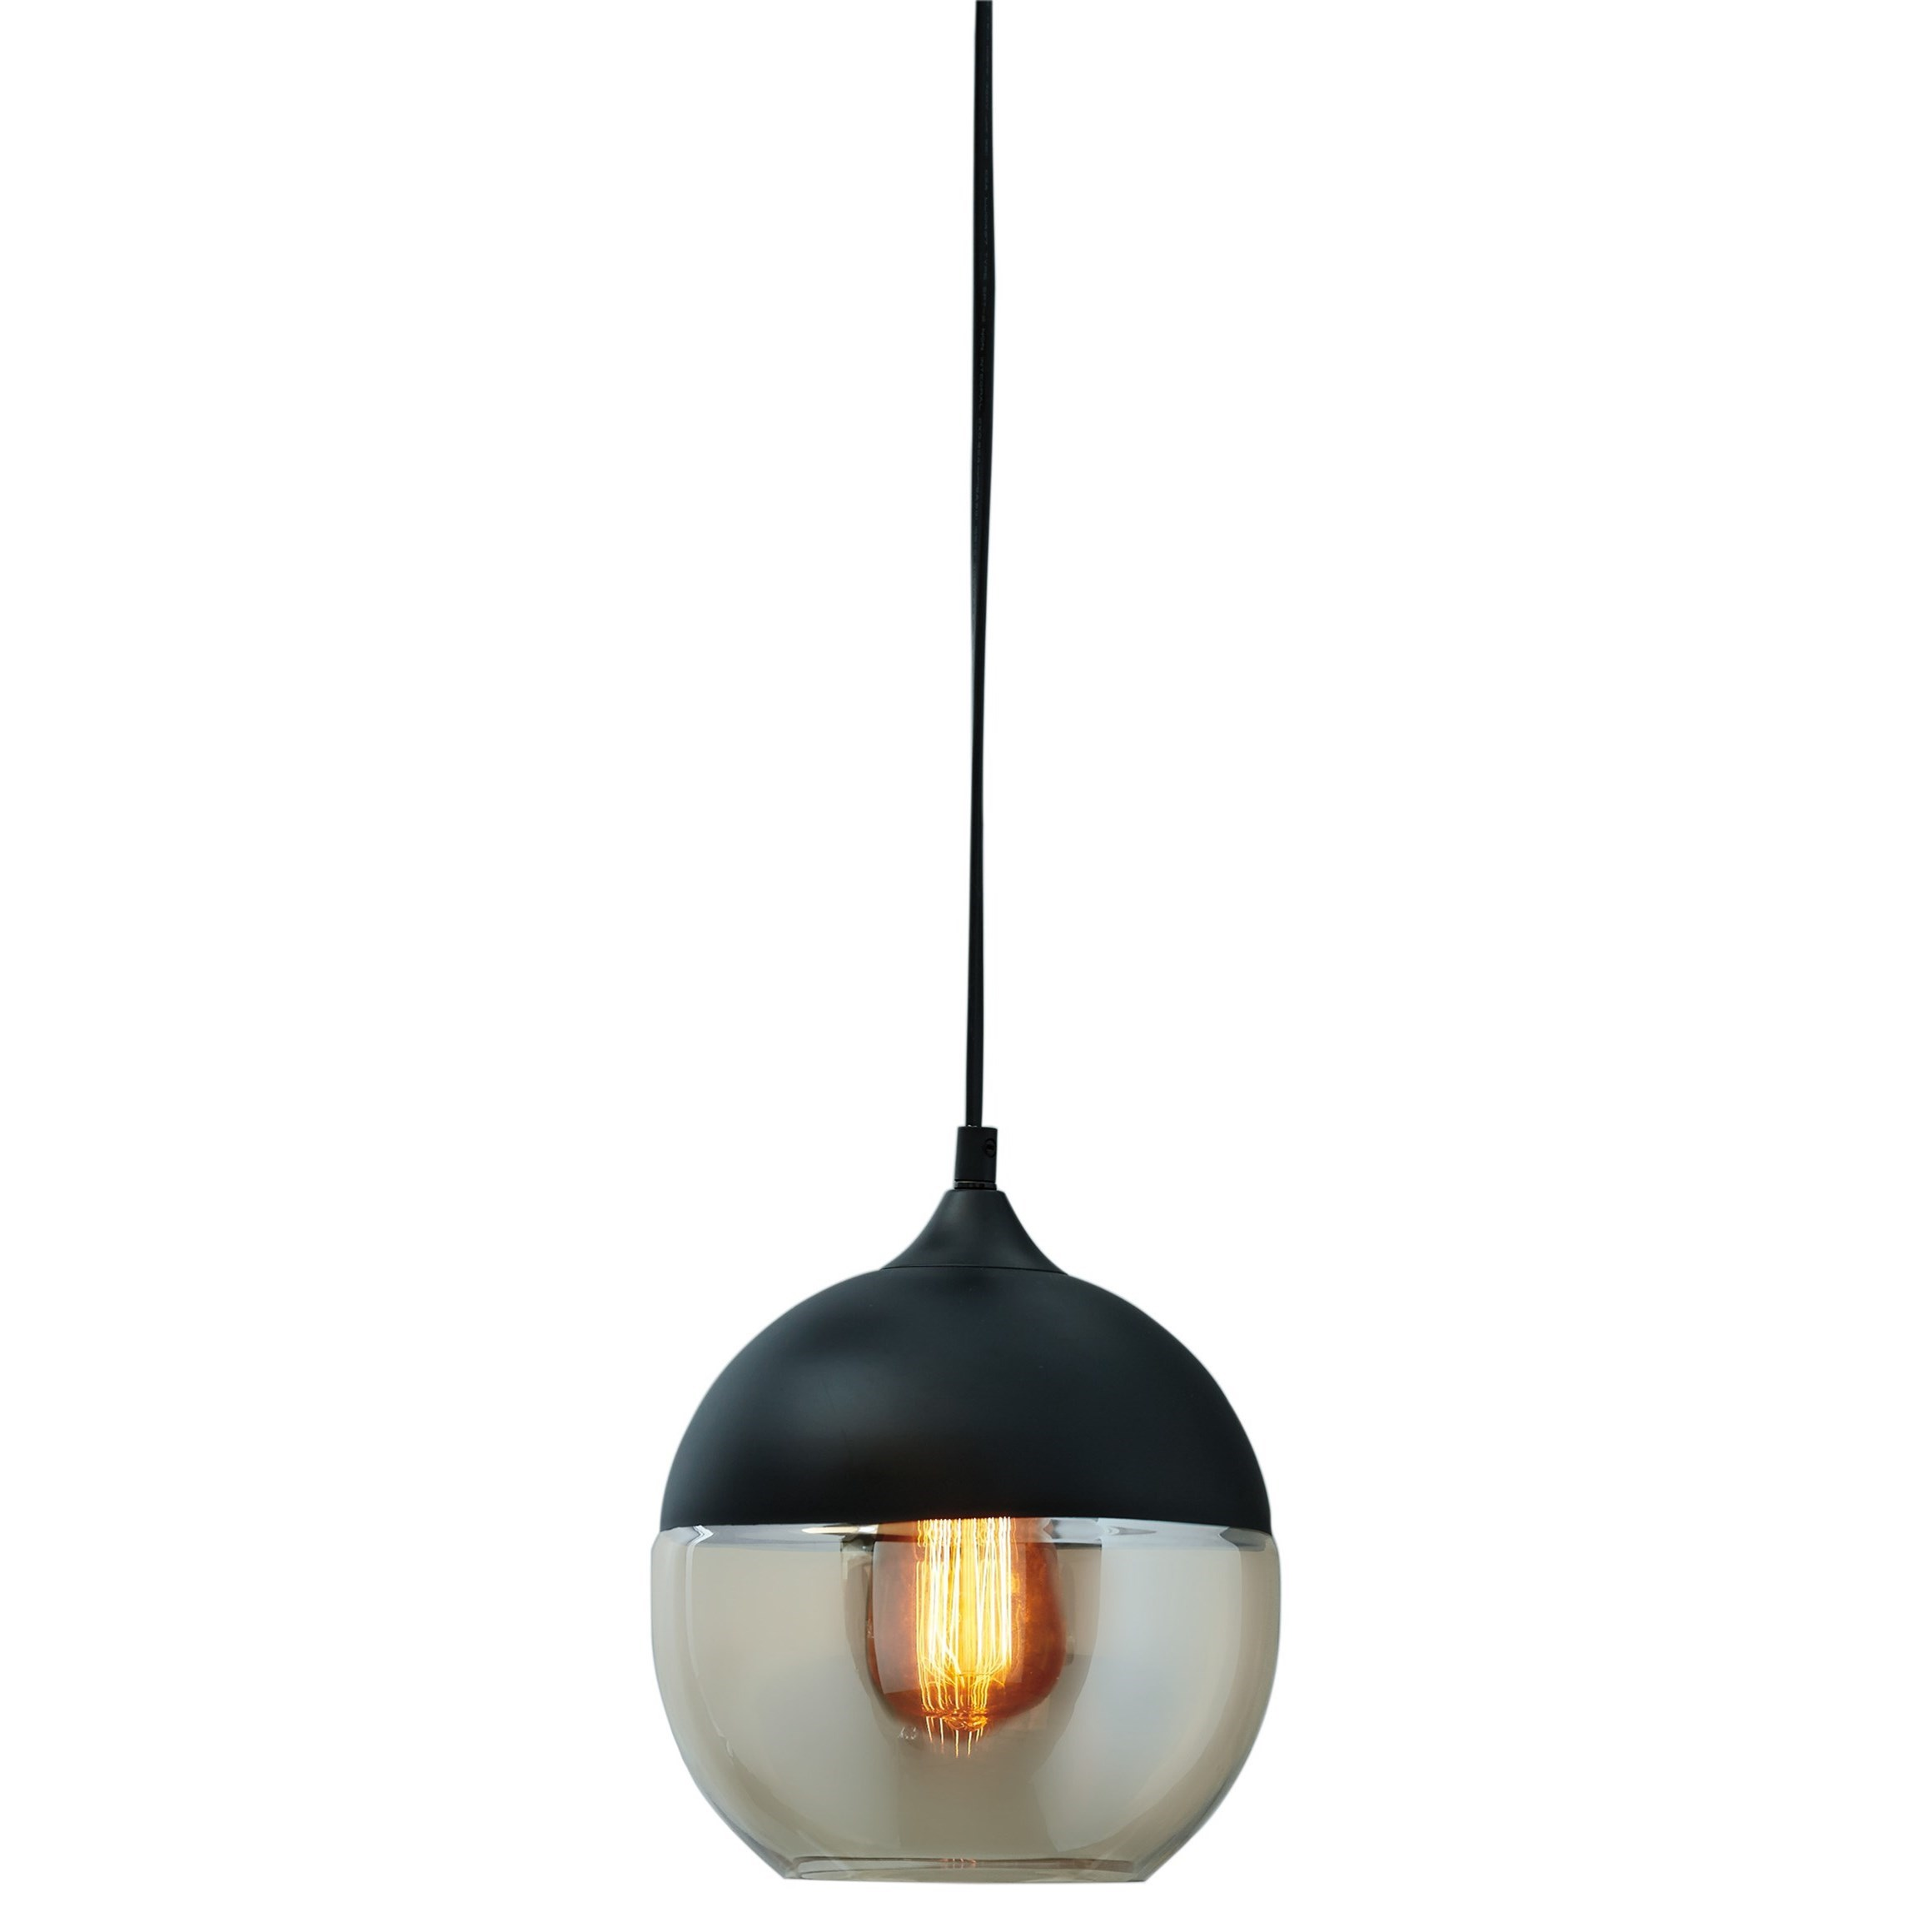 black cord htm lamp koge gloss ball light ceiling pendant with ceilings share